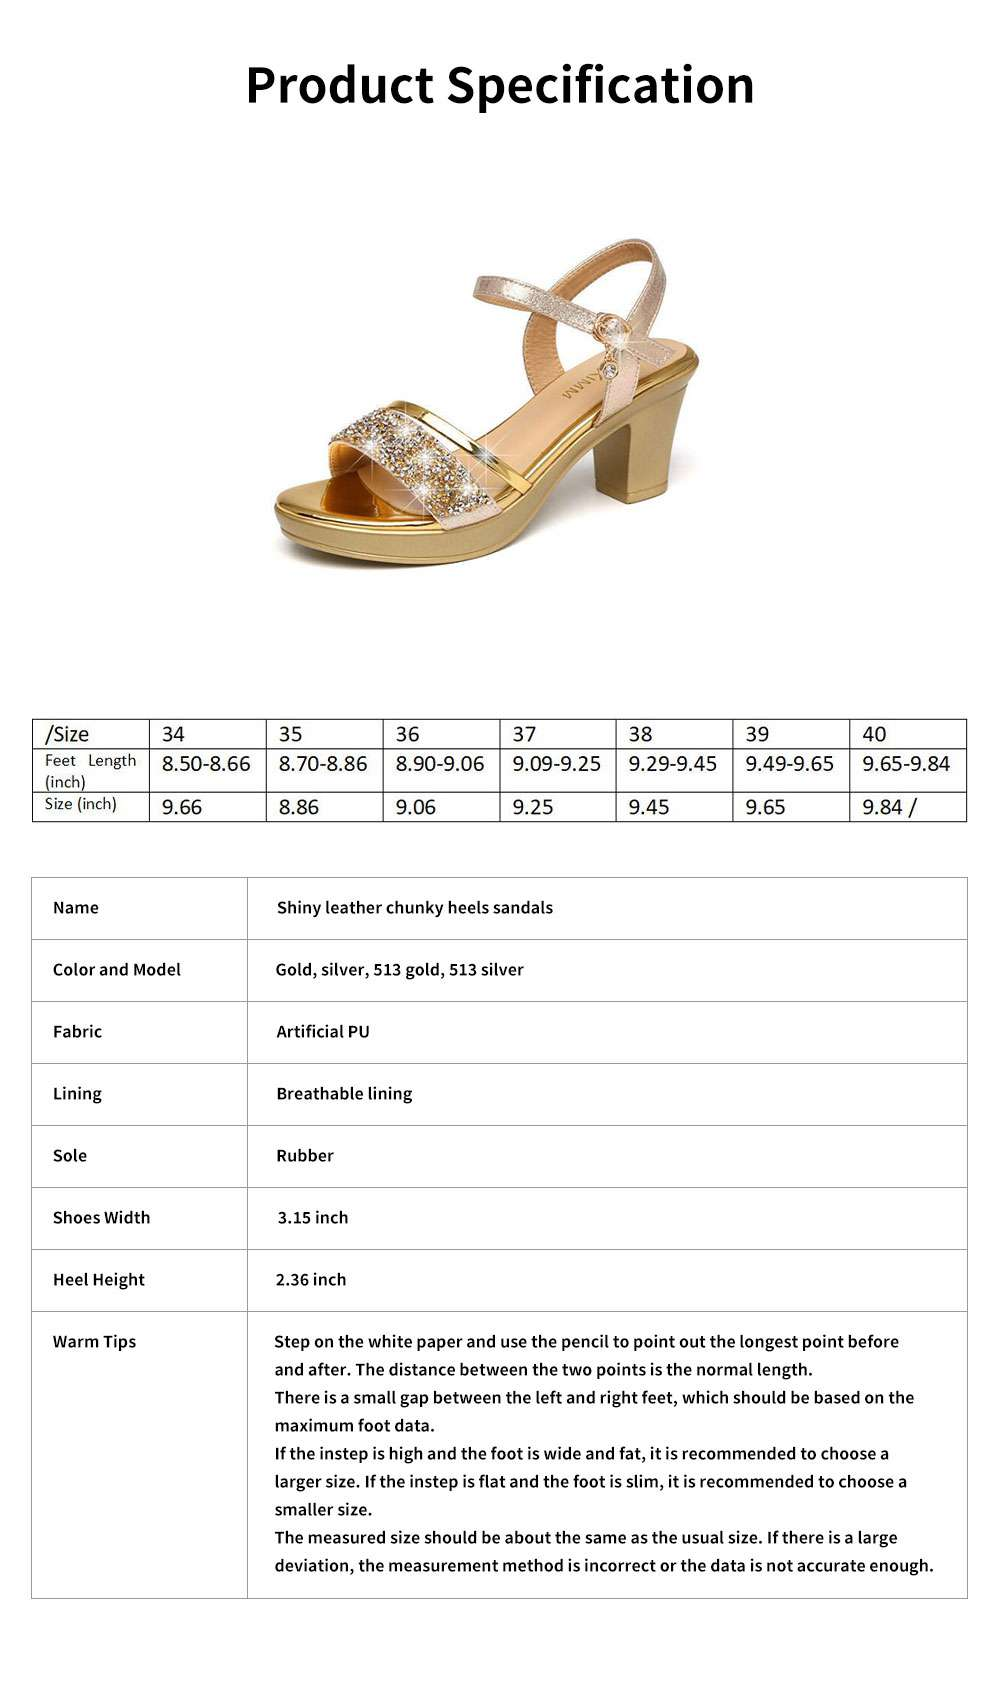 Fancy Elegant Shiny Surface Chunky Heels Leather Sandals Hollow Flower Pattern Upper Peep-Toe High Heel with Metal Buckle 7